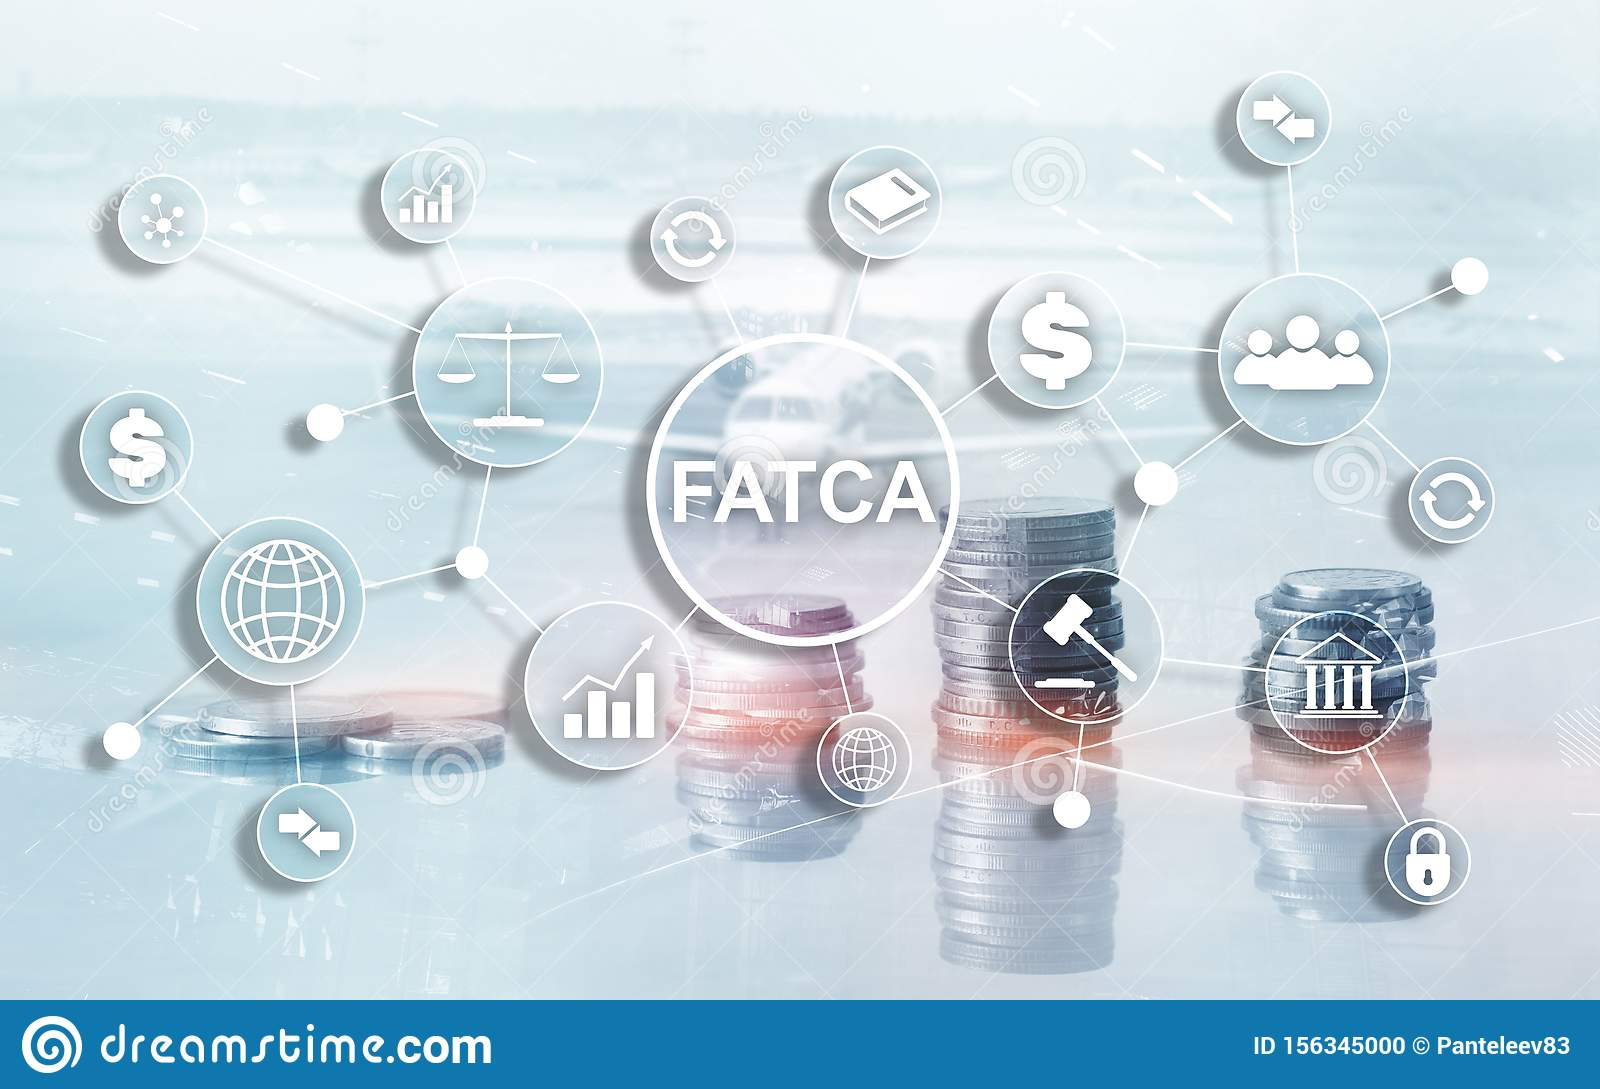 FATCA Foreign Account Tax Compliance Act United States of America government law business finance regulation concept.